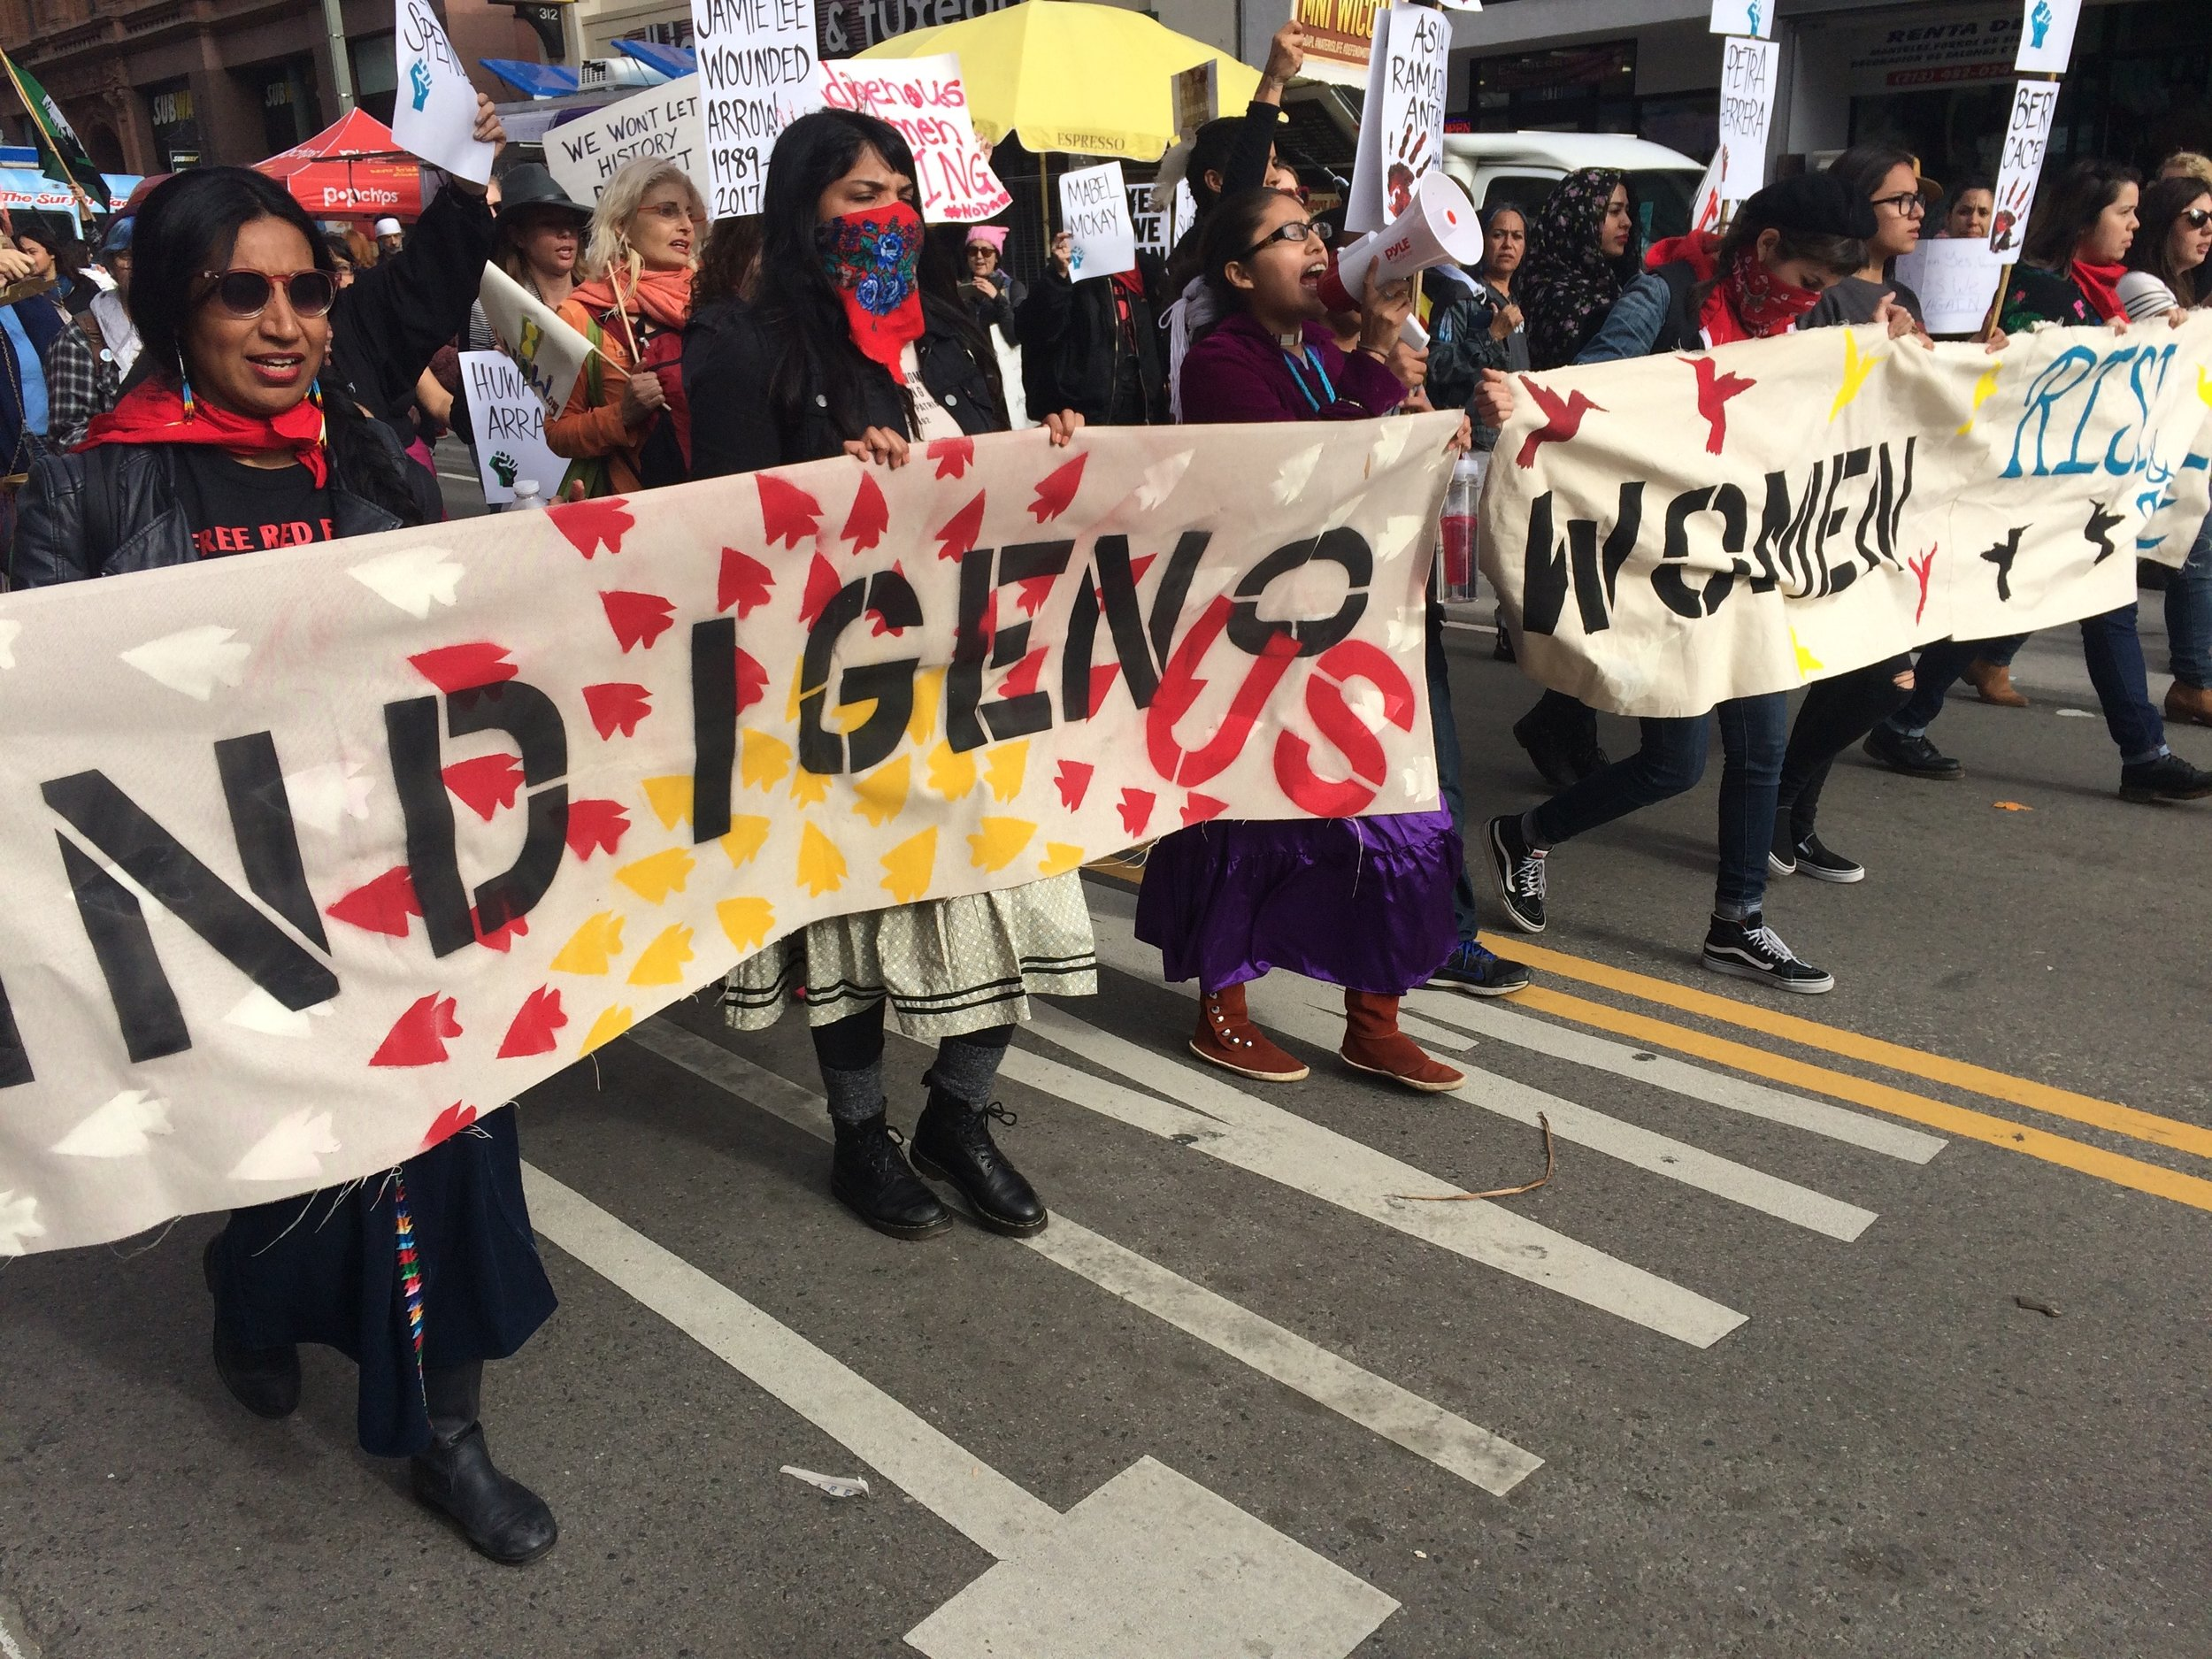 Indigenous Women Rise, one of many groups showing support for the day, carried banners down Broadway. (Photo by Loud Owl)